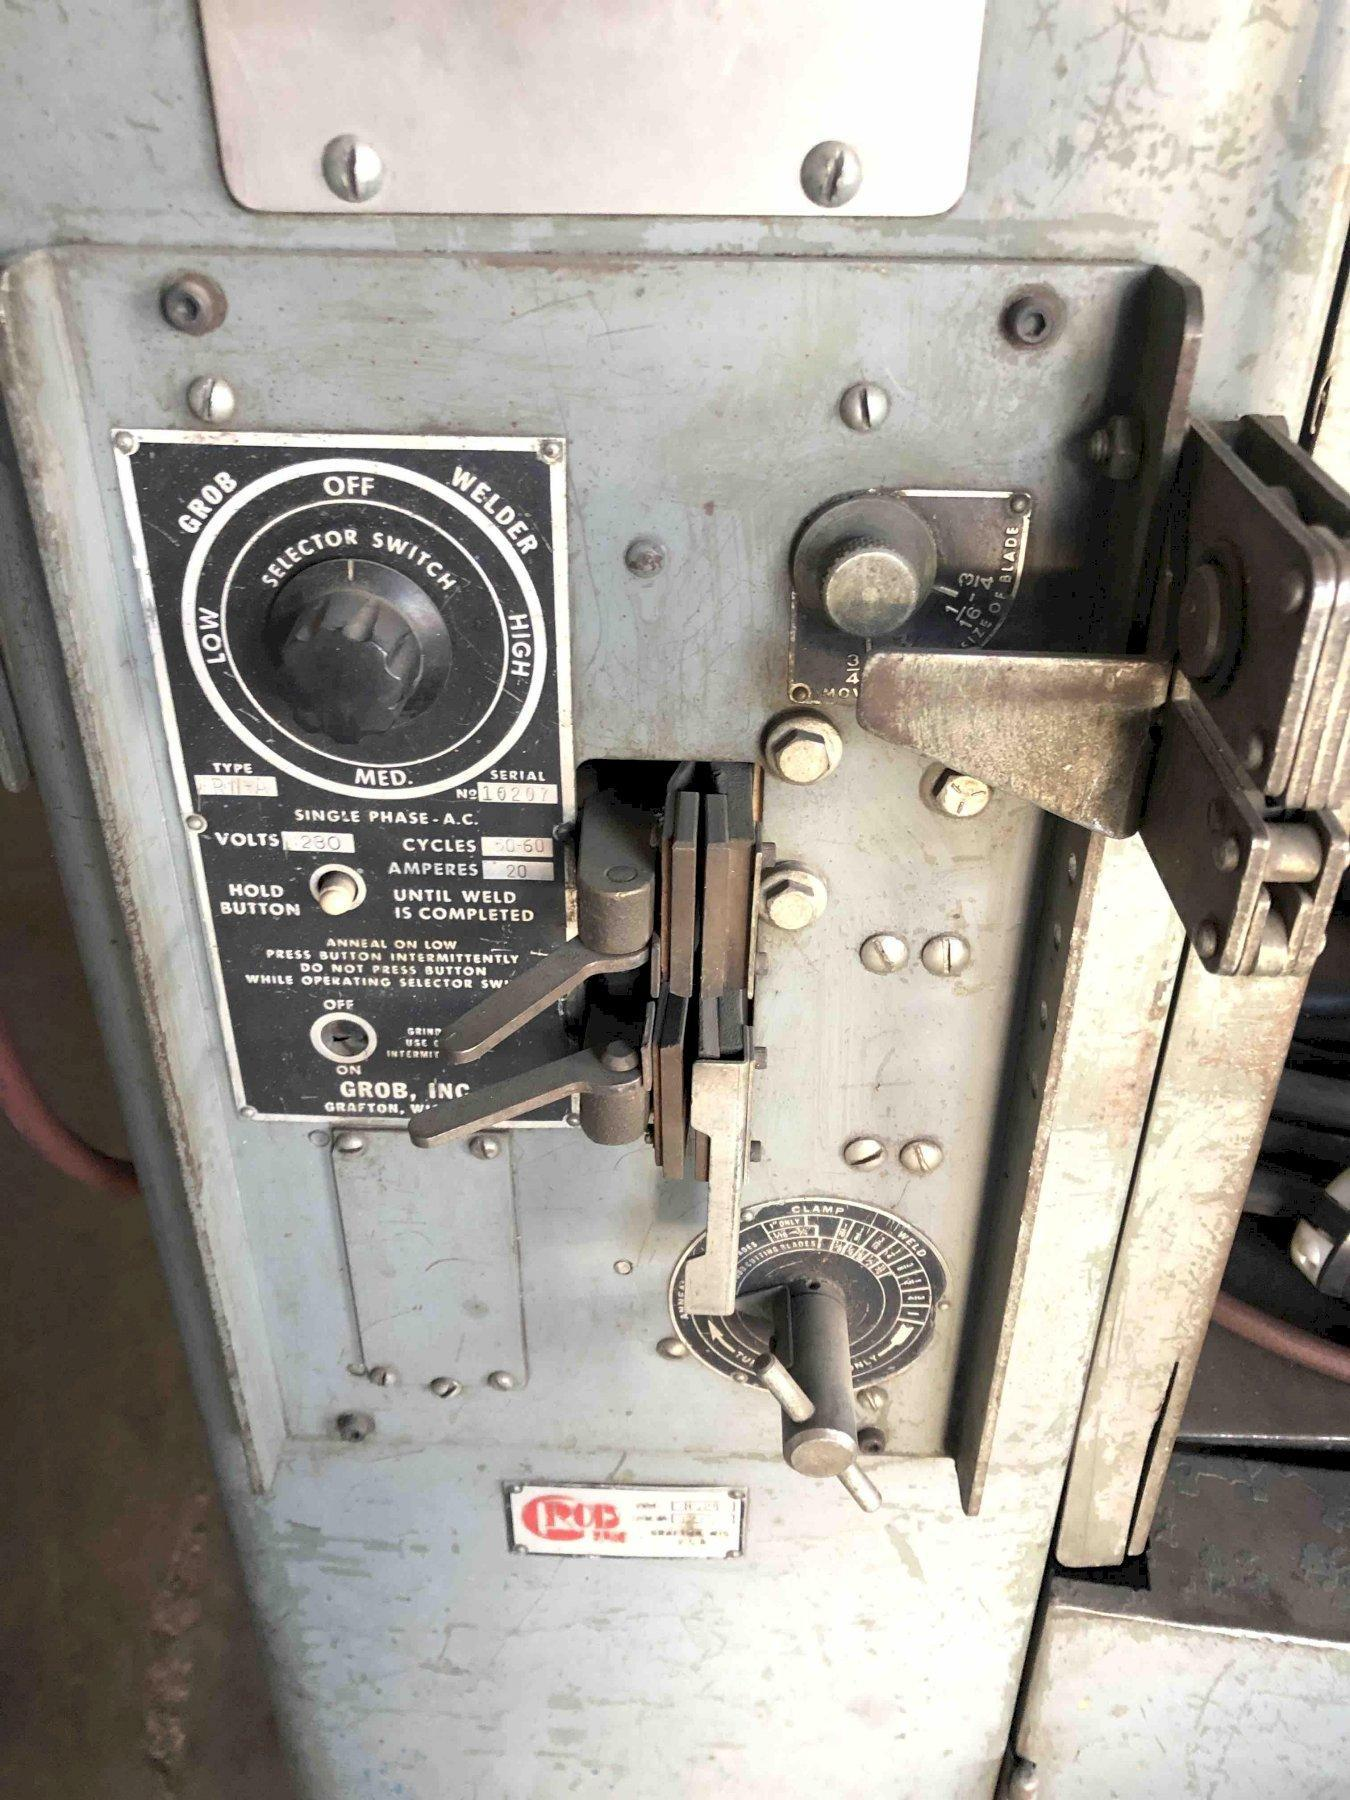 1 - PREOWNED GROB BANDSAW, MODEL #: 524, S/N: 3278